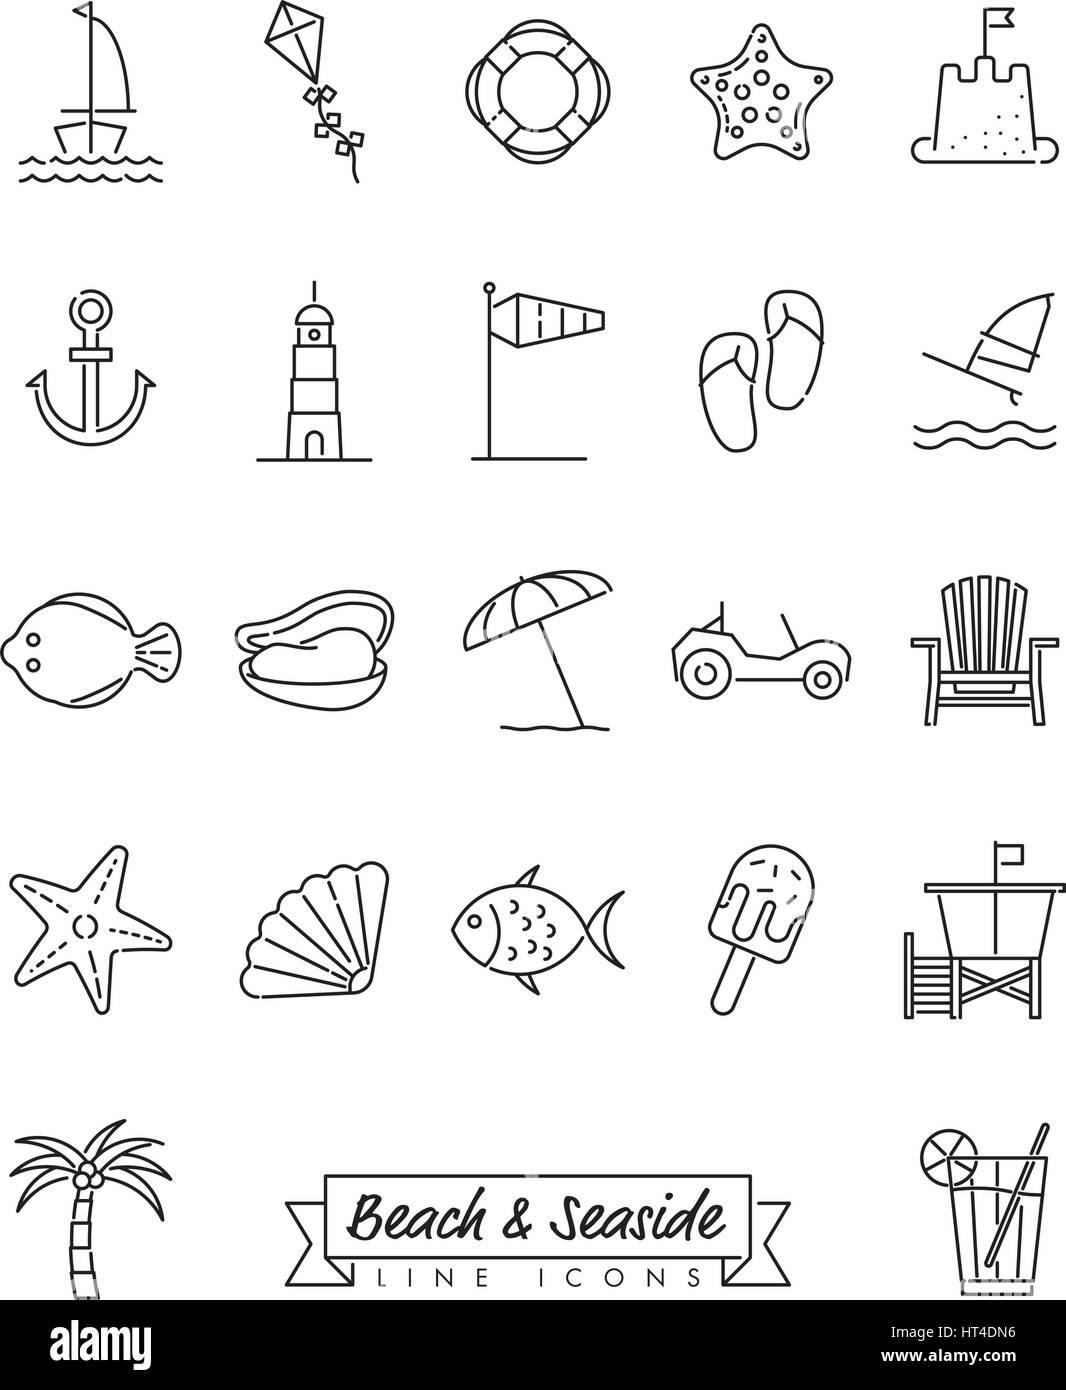 Collection of 22 beach and seaside related symbols Stock Vector